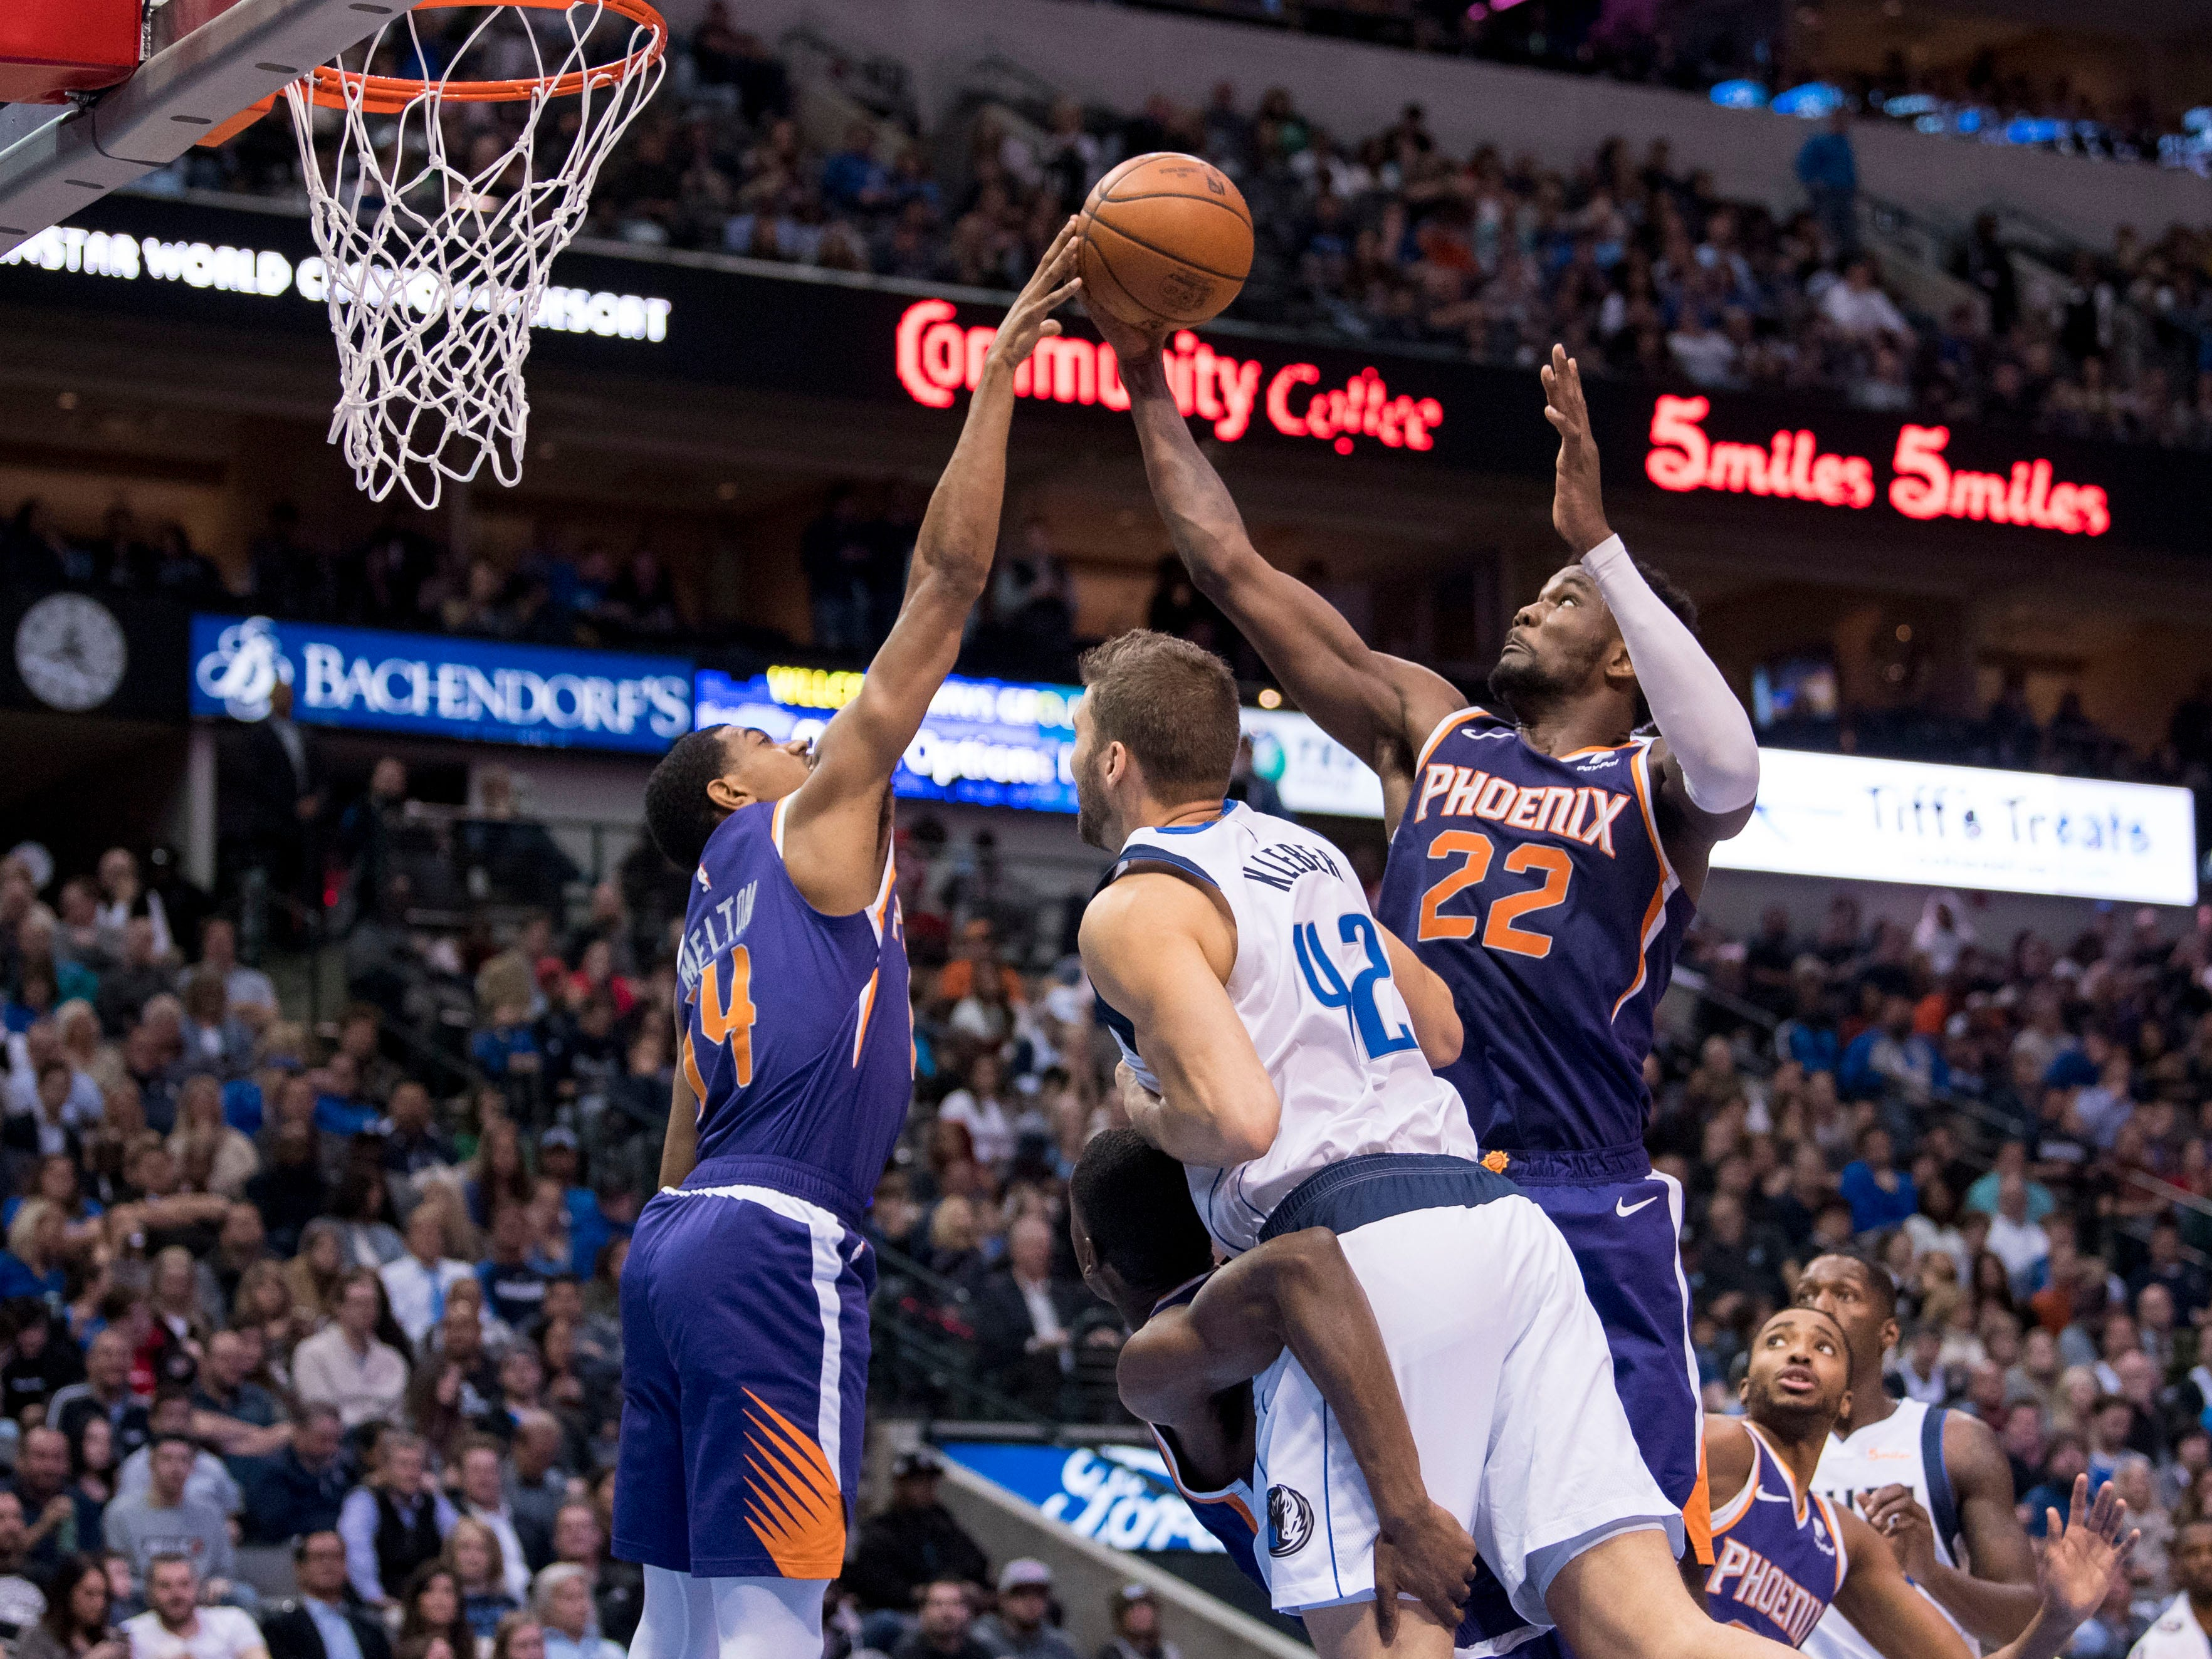 Jan 9, 2019; Dallas, TX, USA; Phoenix Suns guard De'Anthony Melton (14) and center Deandre Ayton (22) grab a rebound in front of Dallas Mavericks forward Maximilian Kleber (42) during the second quarter at the American Airlines Center. Mandatory Credit: Jerome Miron-USA TODAY Sports